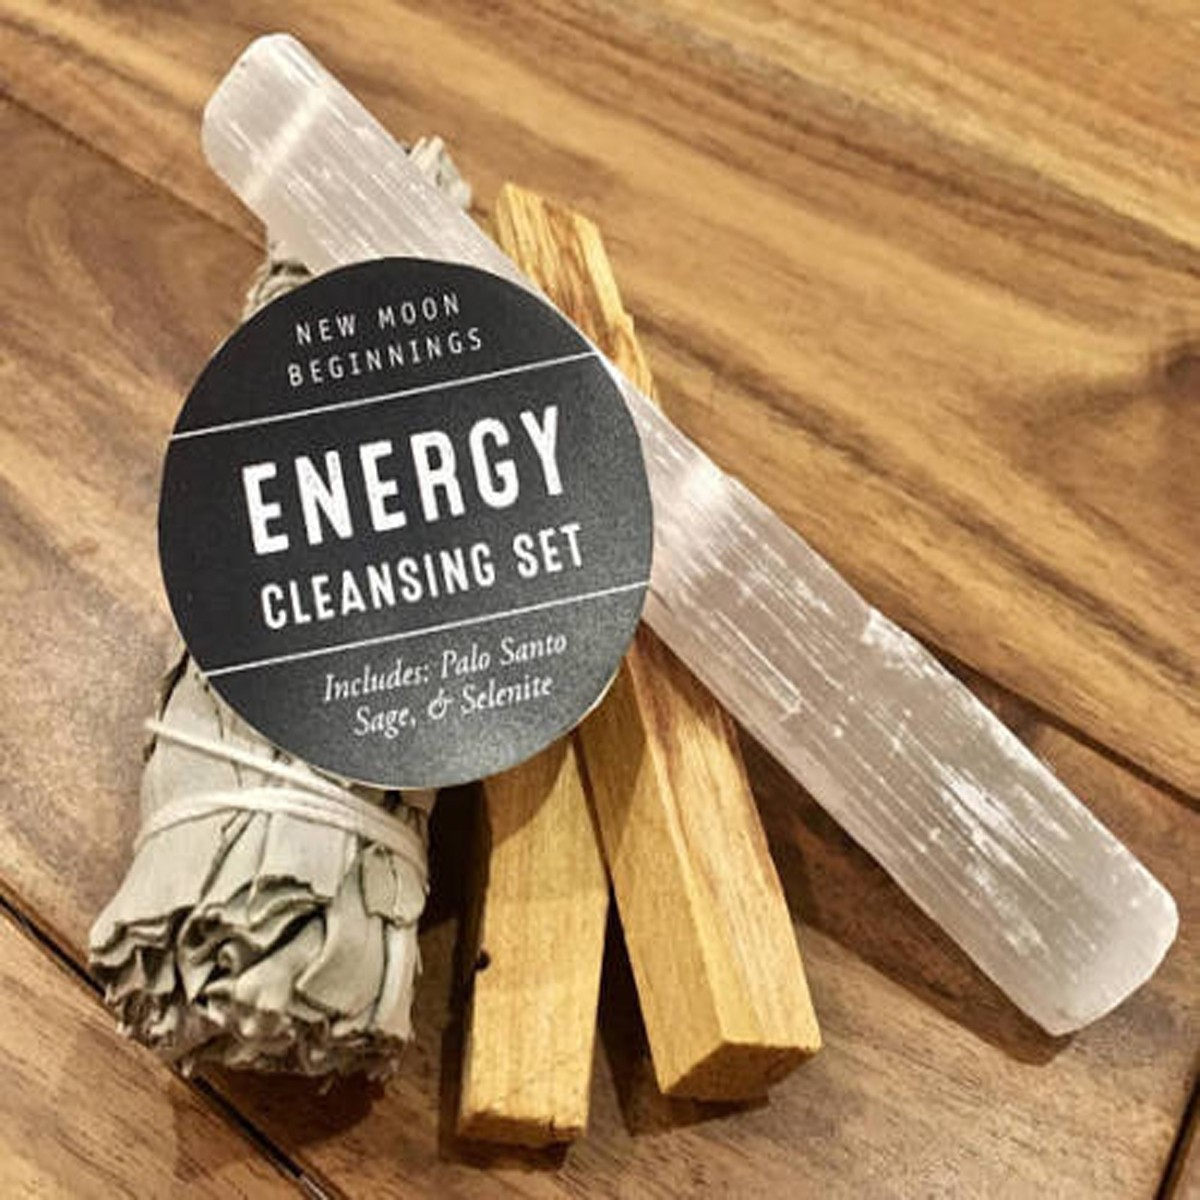 New Moon Energy Cleansing Smudge Ritual Set